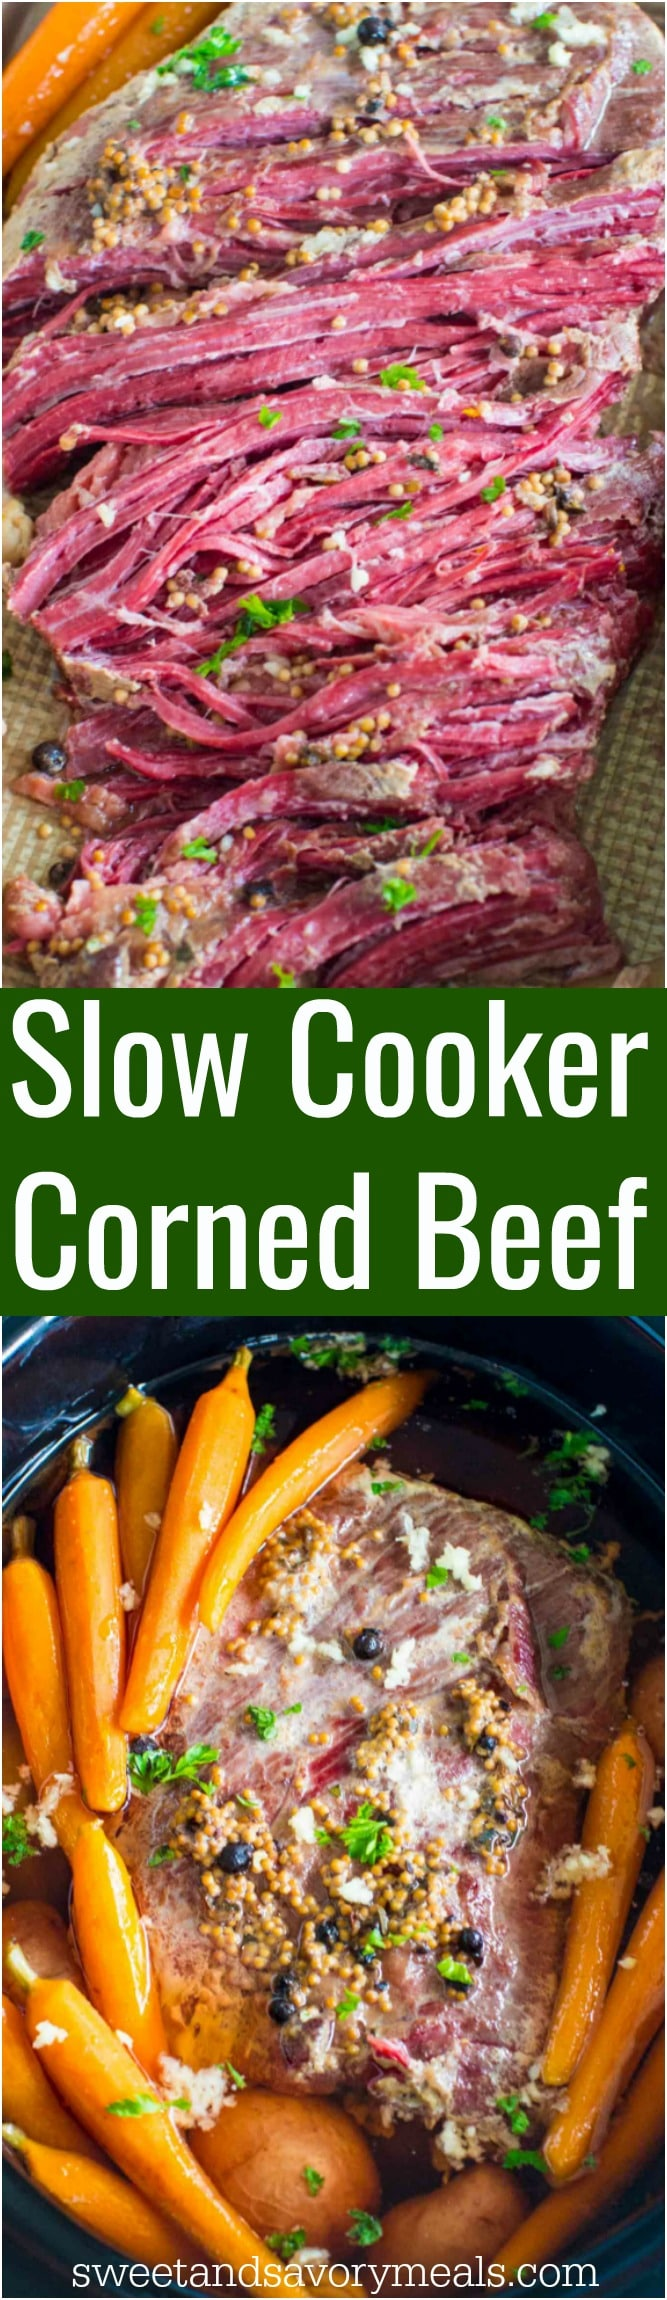 Slow Cooker Corned Beef is the easiest recipes ever. All you have to do is add all the ingredients to the slow cooker and let it work its magic.